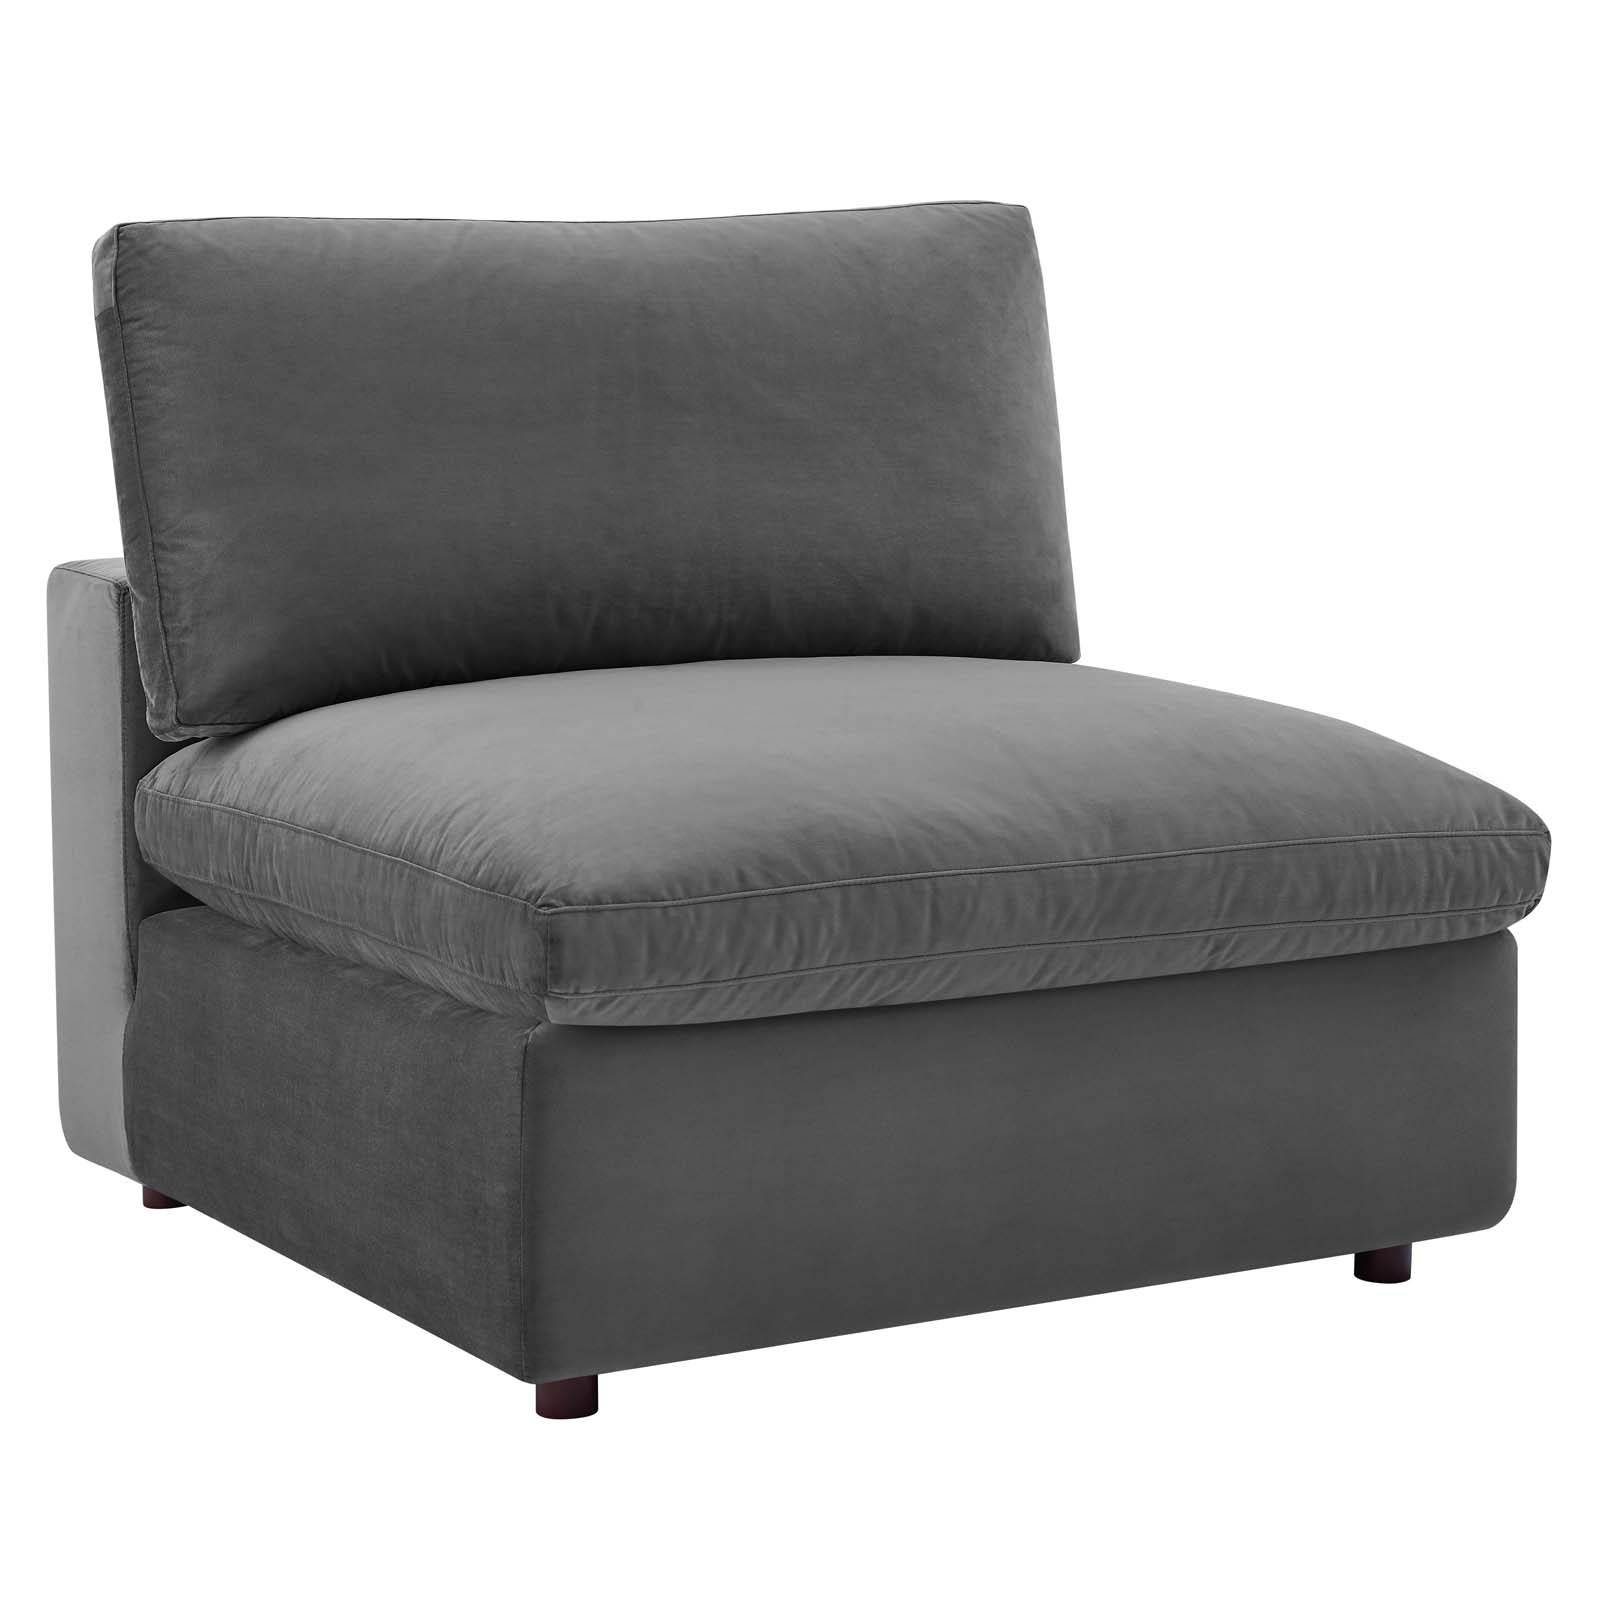 Commix Down Filled Overstuffed Performance Velvet Armless For Overstuffed Sofas And Chairs (View 2 of 15)